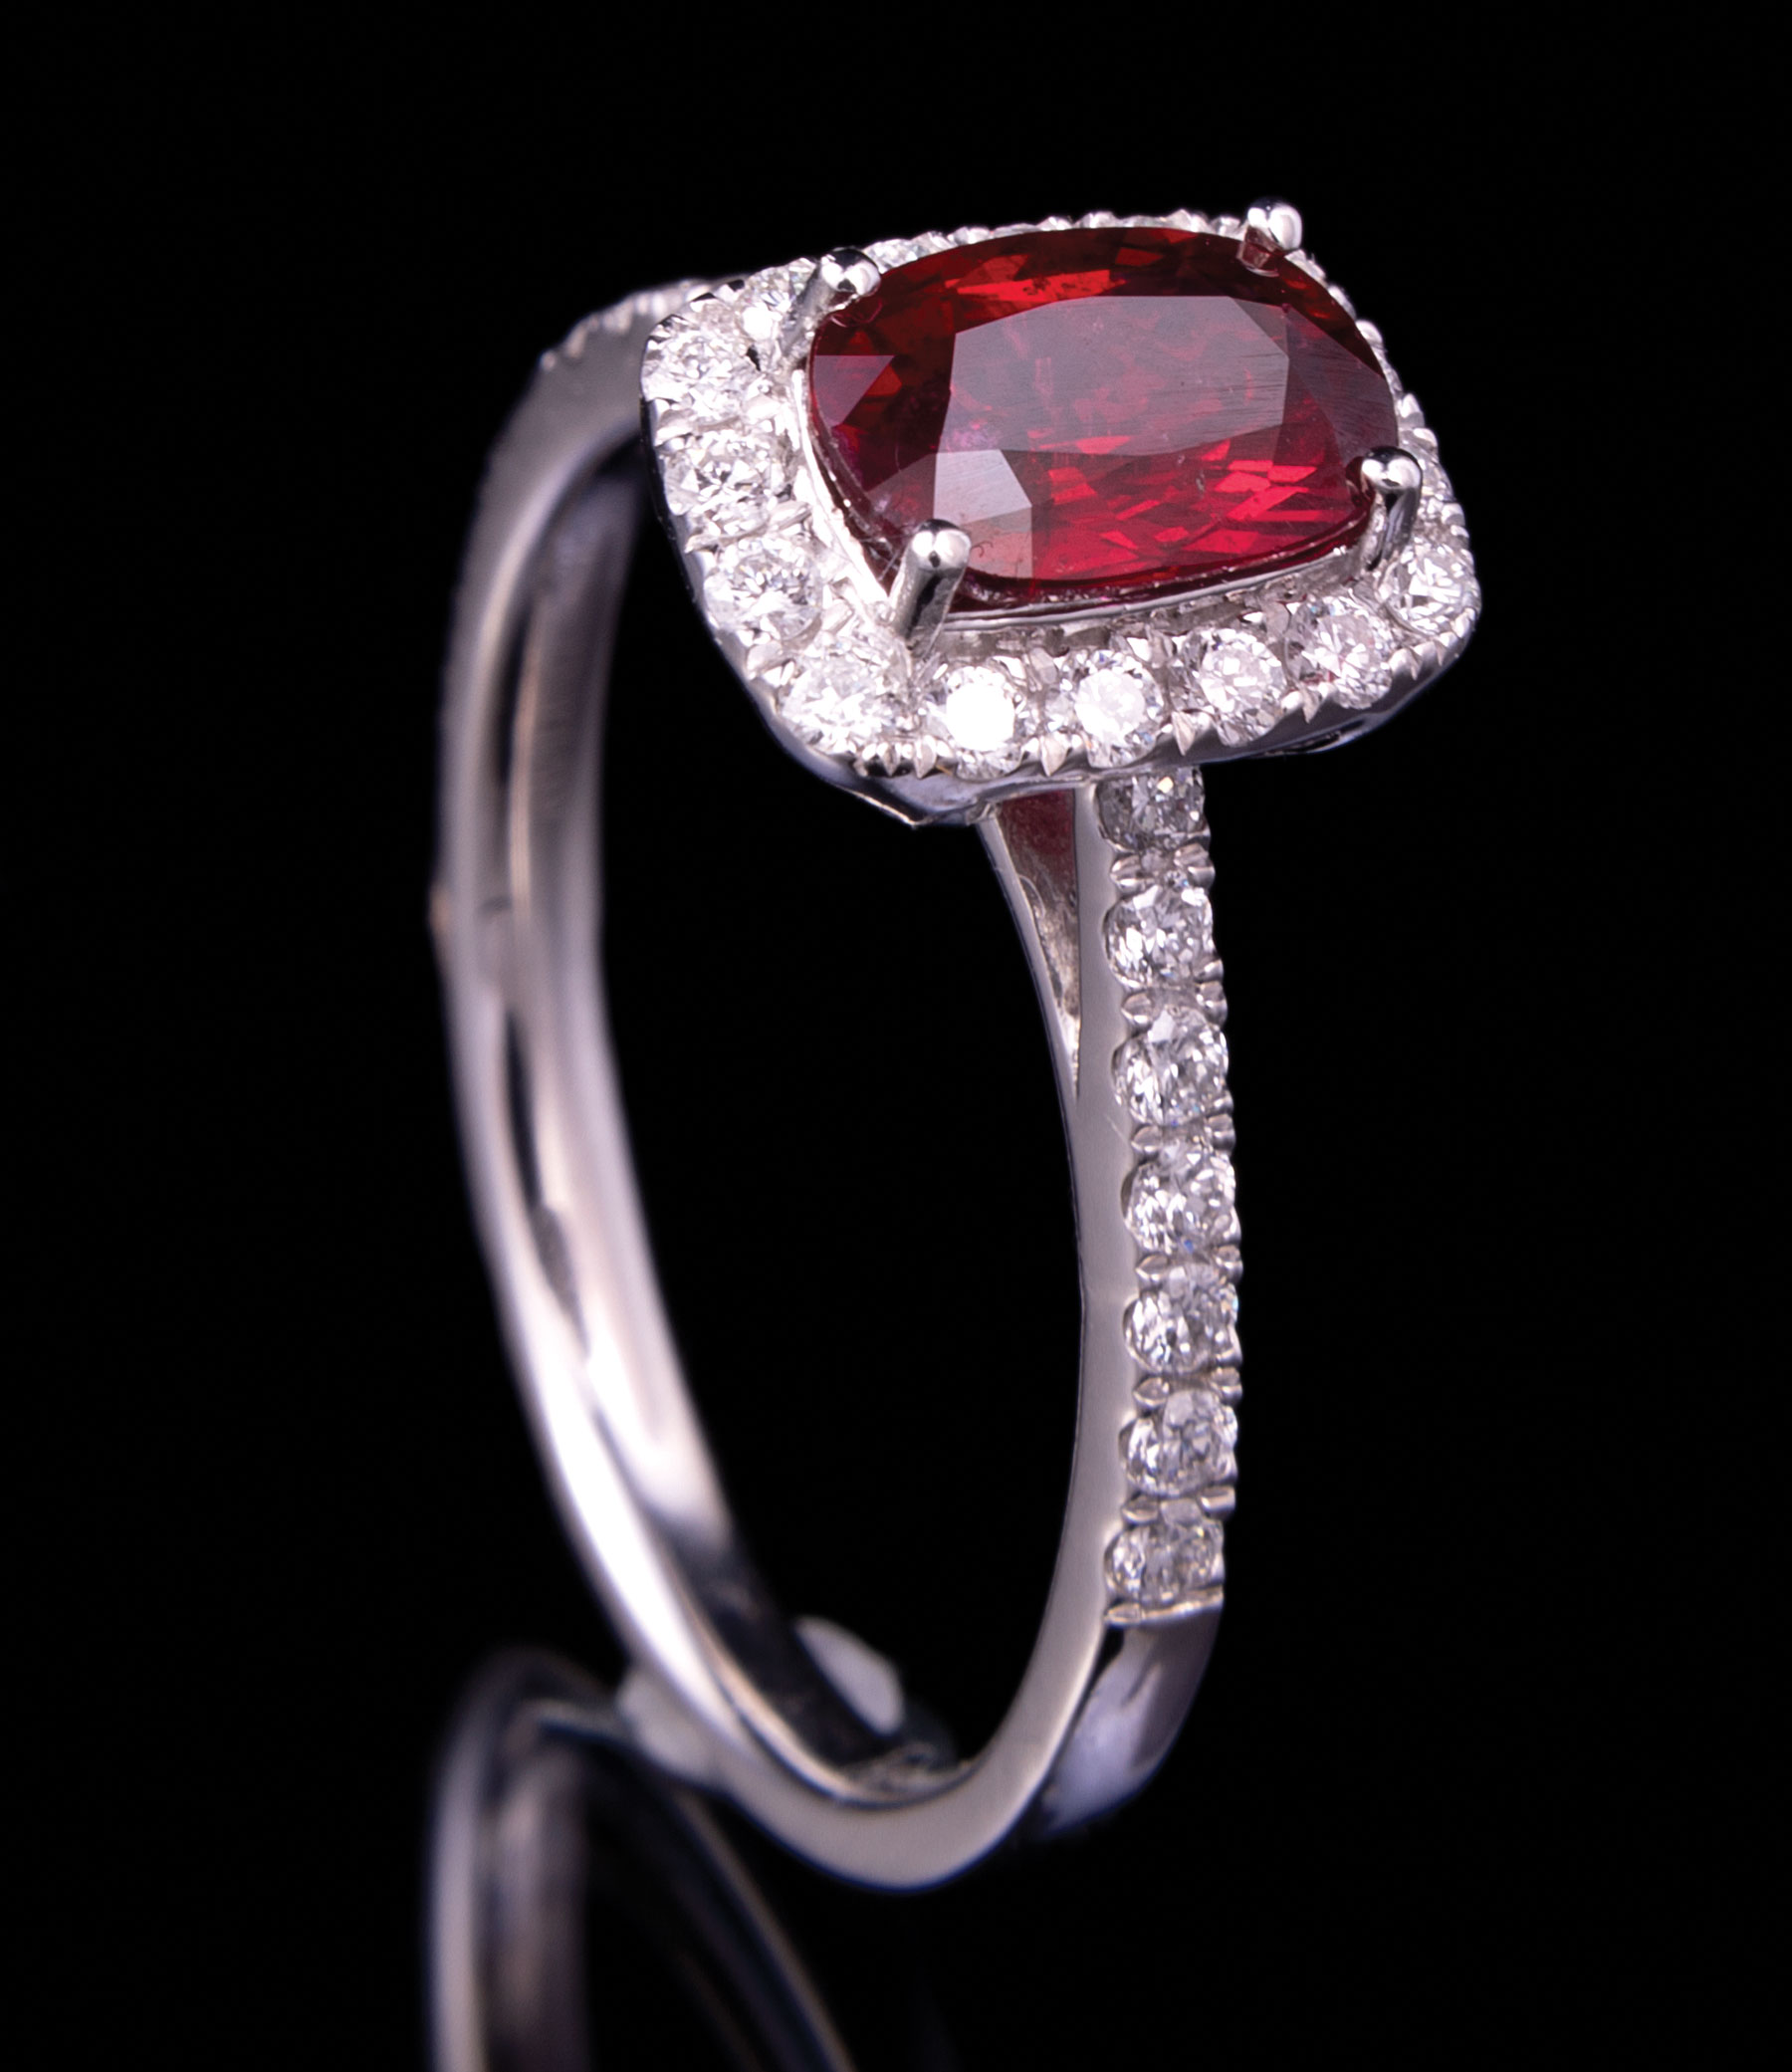 Lot 611 - Platinum, Ruby and Diamond Ring , prong set oval mixed cut ruby, 7.41 x 5.08 x 3.24 mm, exact wt.